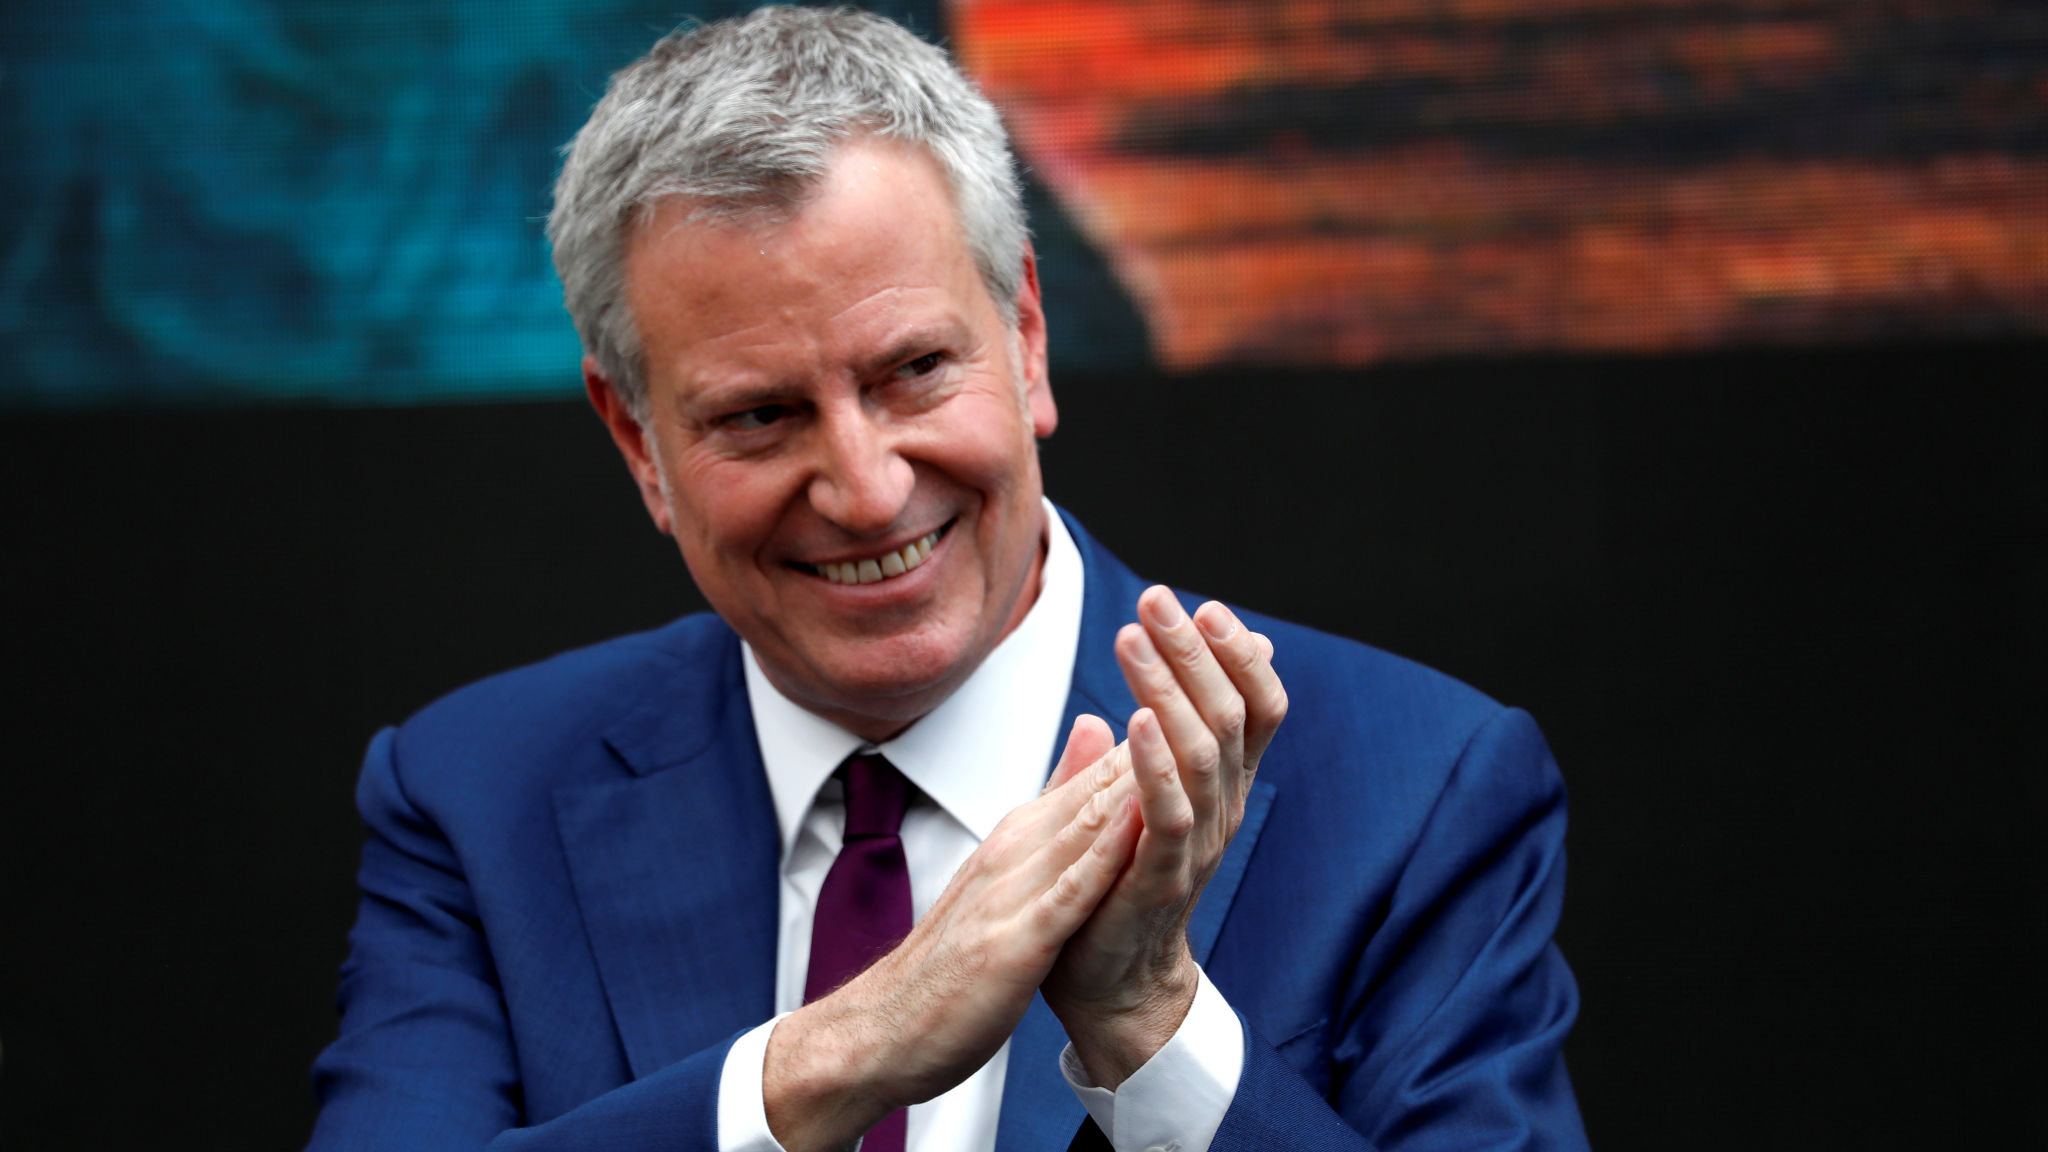 New York City Mayor and Democratic Presidential candidate Bill de Blasio attends the dedication of the new Statue of Liberty Museum on Liberty Island in New York Harbor, U.S., May 16, 2019. REUTERS/Mike Segar